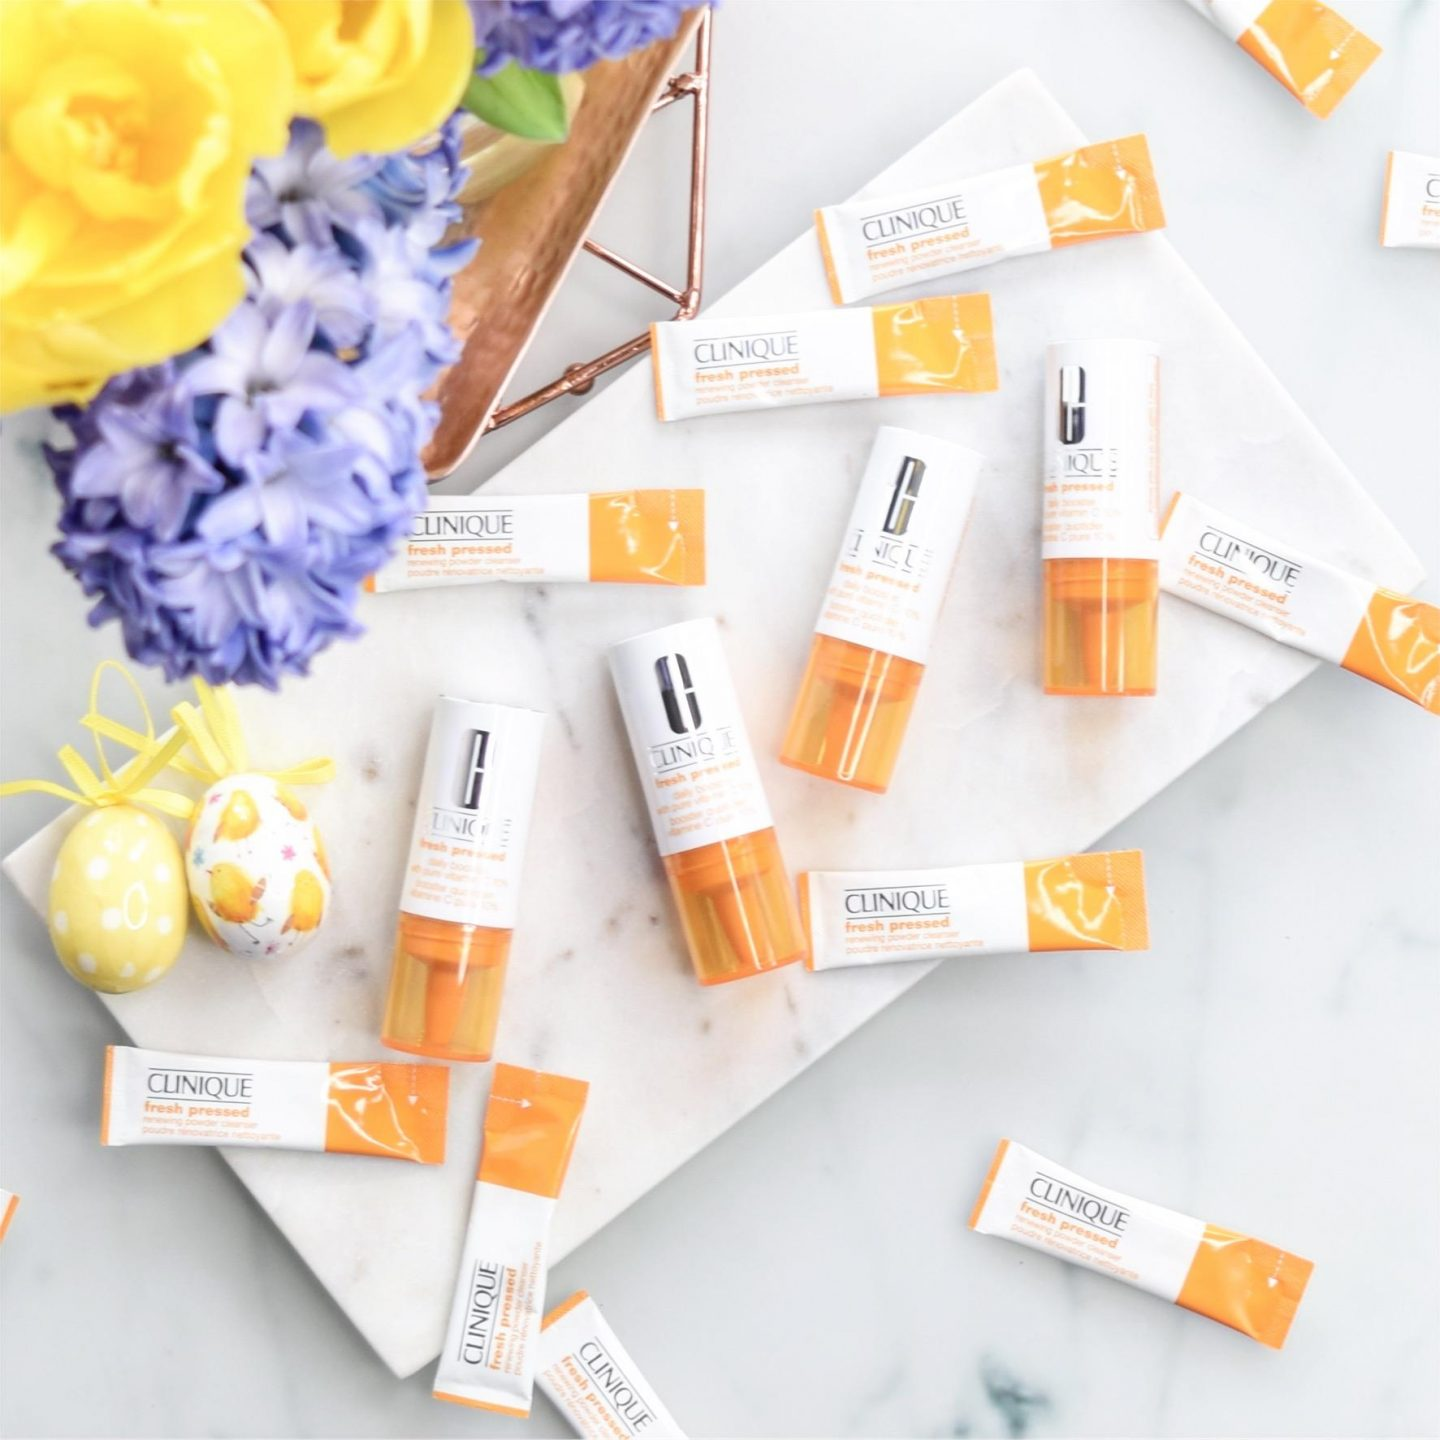 Clinique Fresh Pressed 7 Day System with Pure Vitamin C